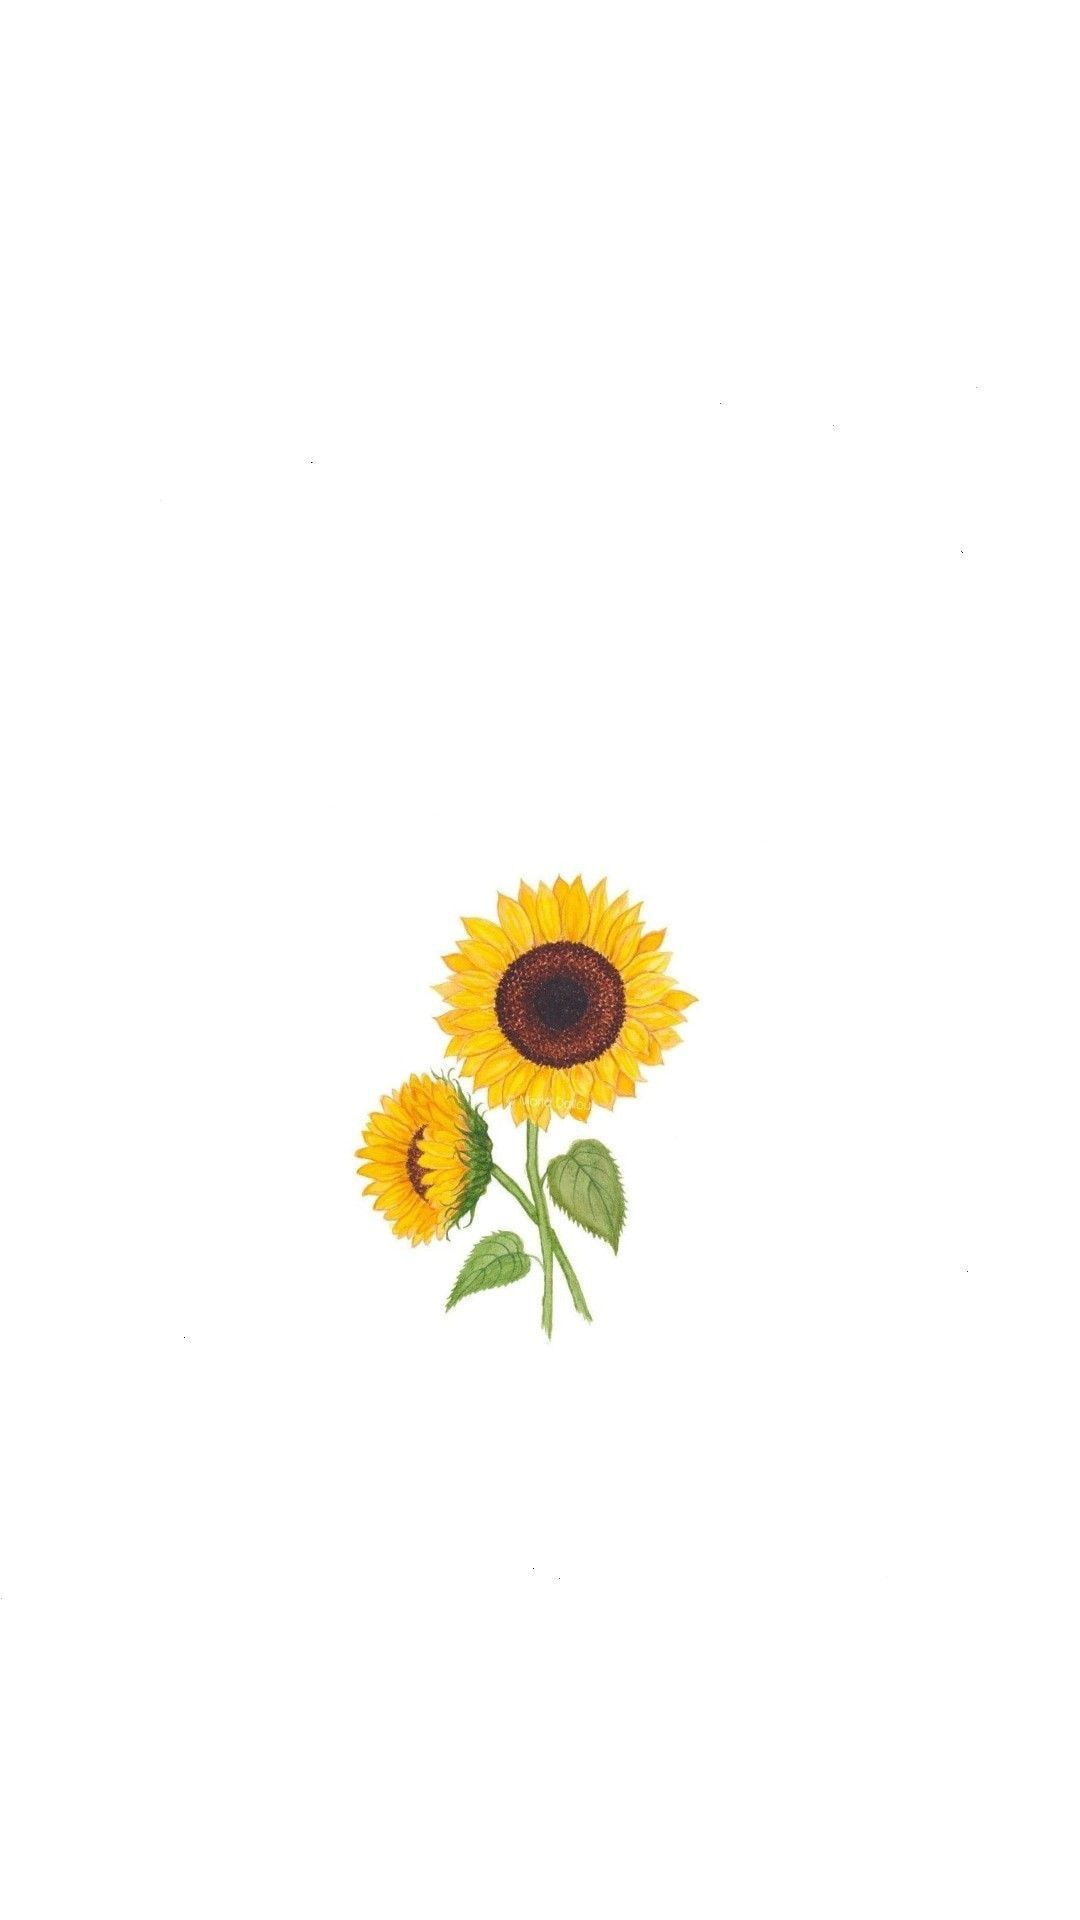 Idea by brooke' 😎 on backgrounds for iphone xr Sunflower